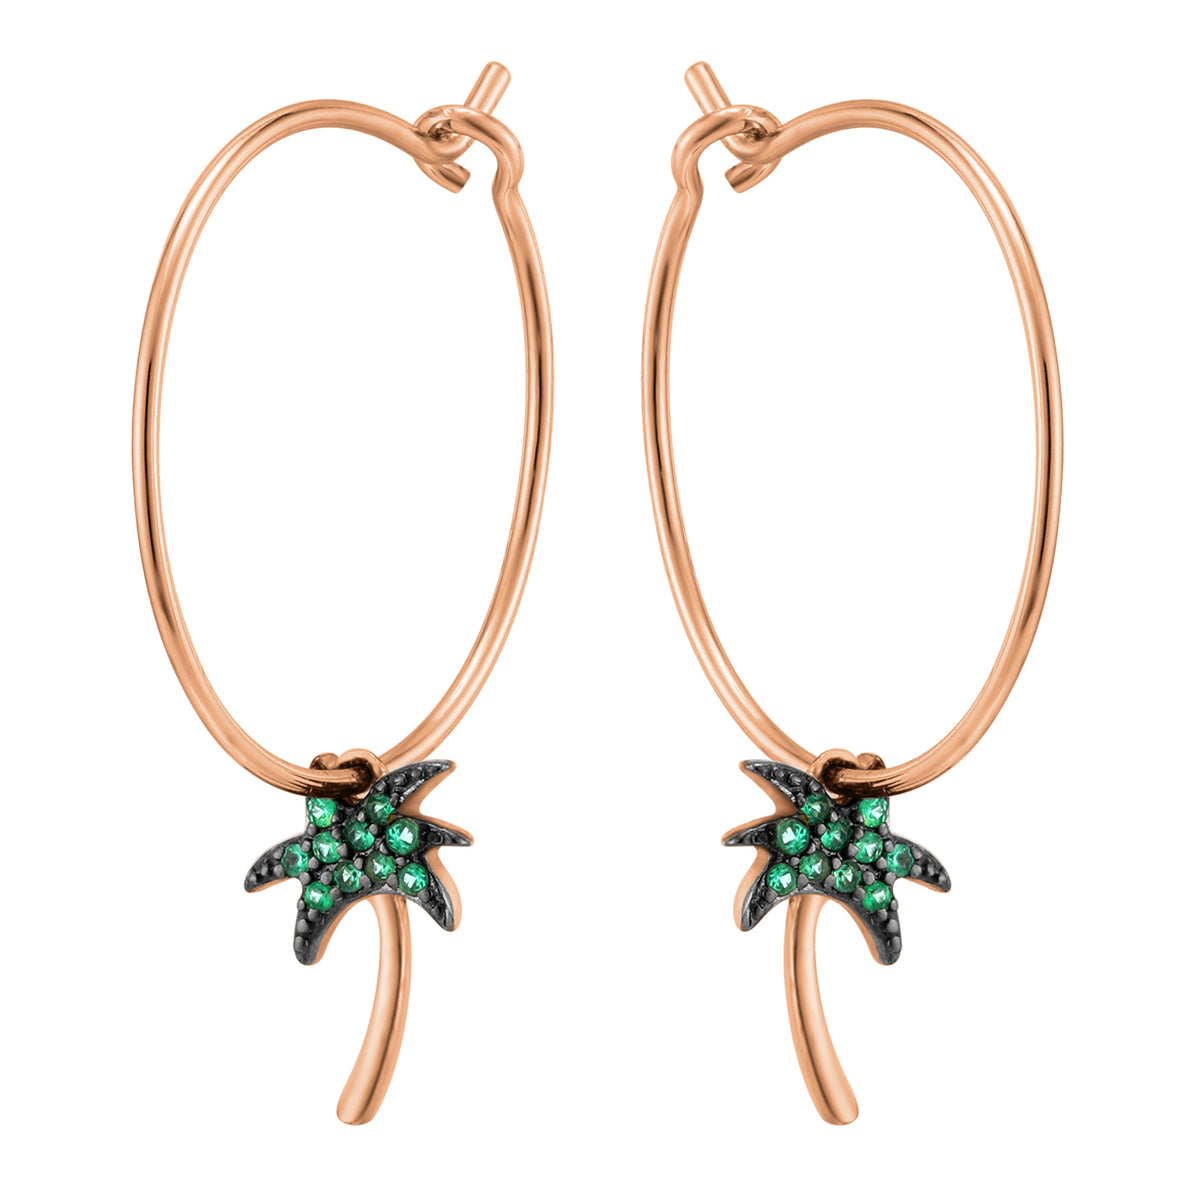 Carmenta | Ibiza Earrings | 925 Silver | Green CZ | Rose Gold & Black Rhodium Plated